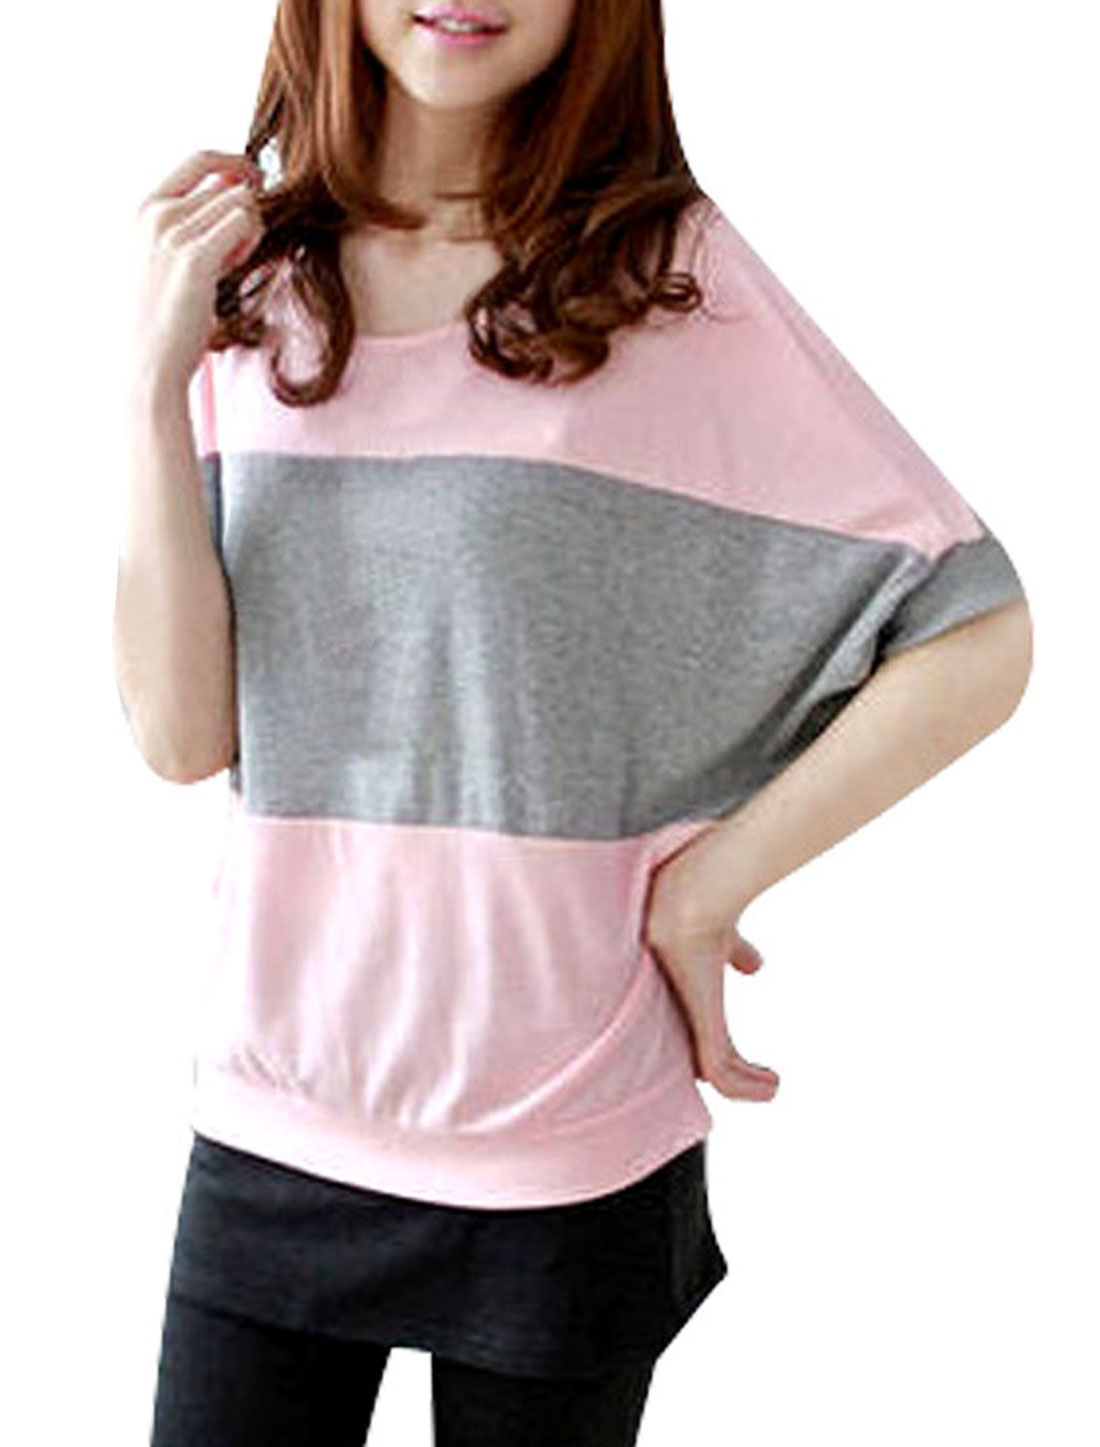 Round Neck Summer Leisure Pink Gray Spliced Top T-Shirt XS for Woman